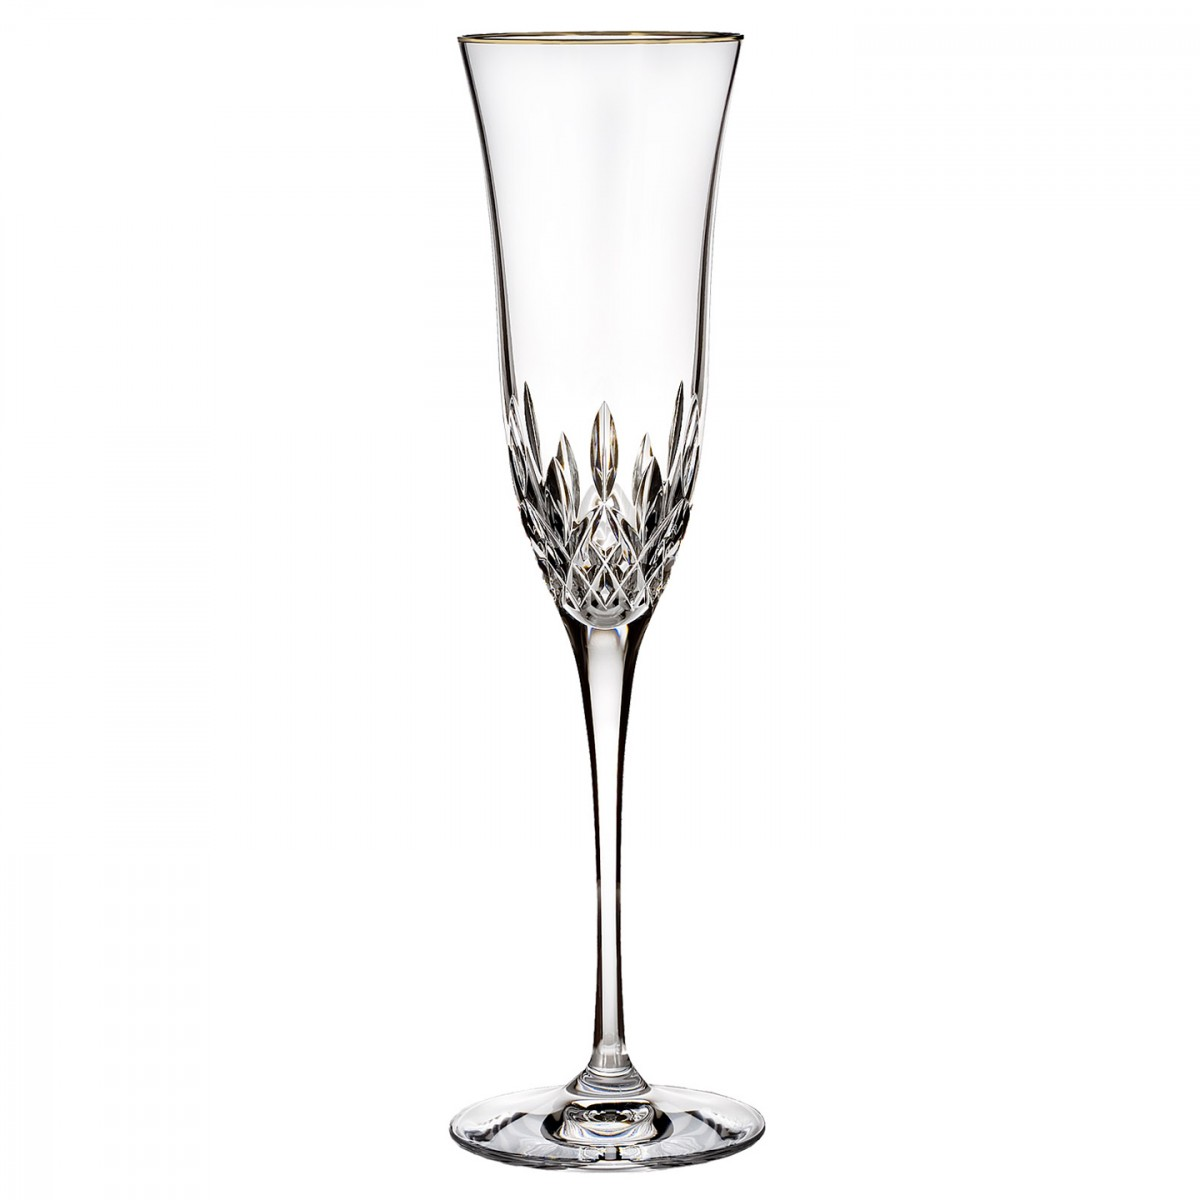 Waterford Crystal, Lismore Essence Gold Champagne Crystal Flute, Single